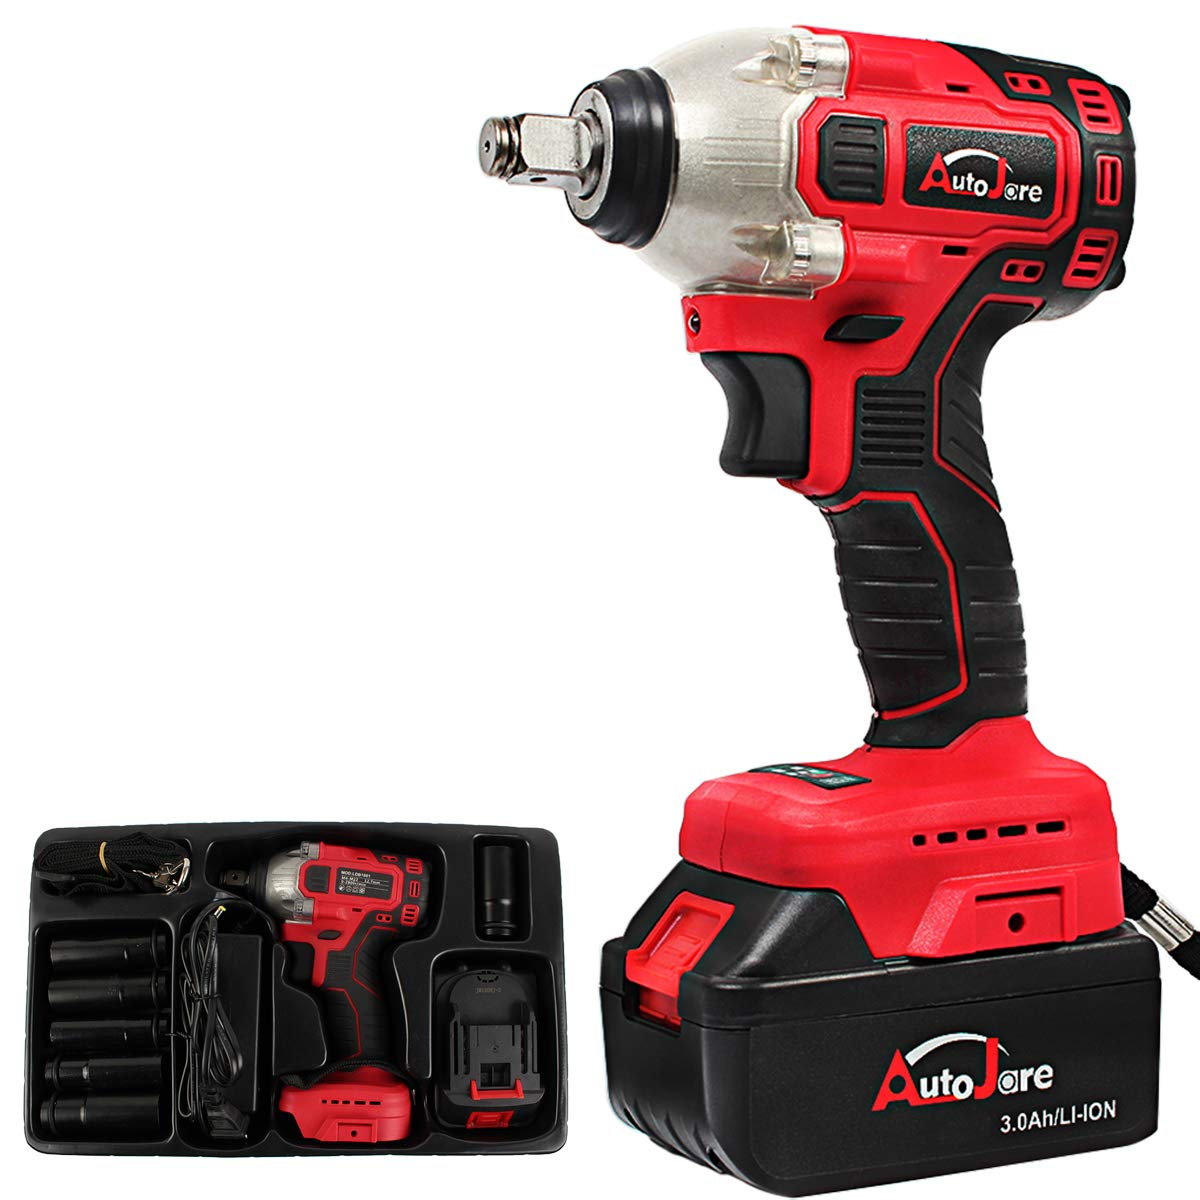 Autojare- 1 2inch Cordless Impact Wrench 20V Max 18V Impact Gun with 6pcs Sockets,Rechargeable Battery,Charger